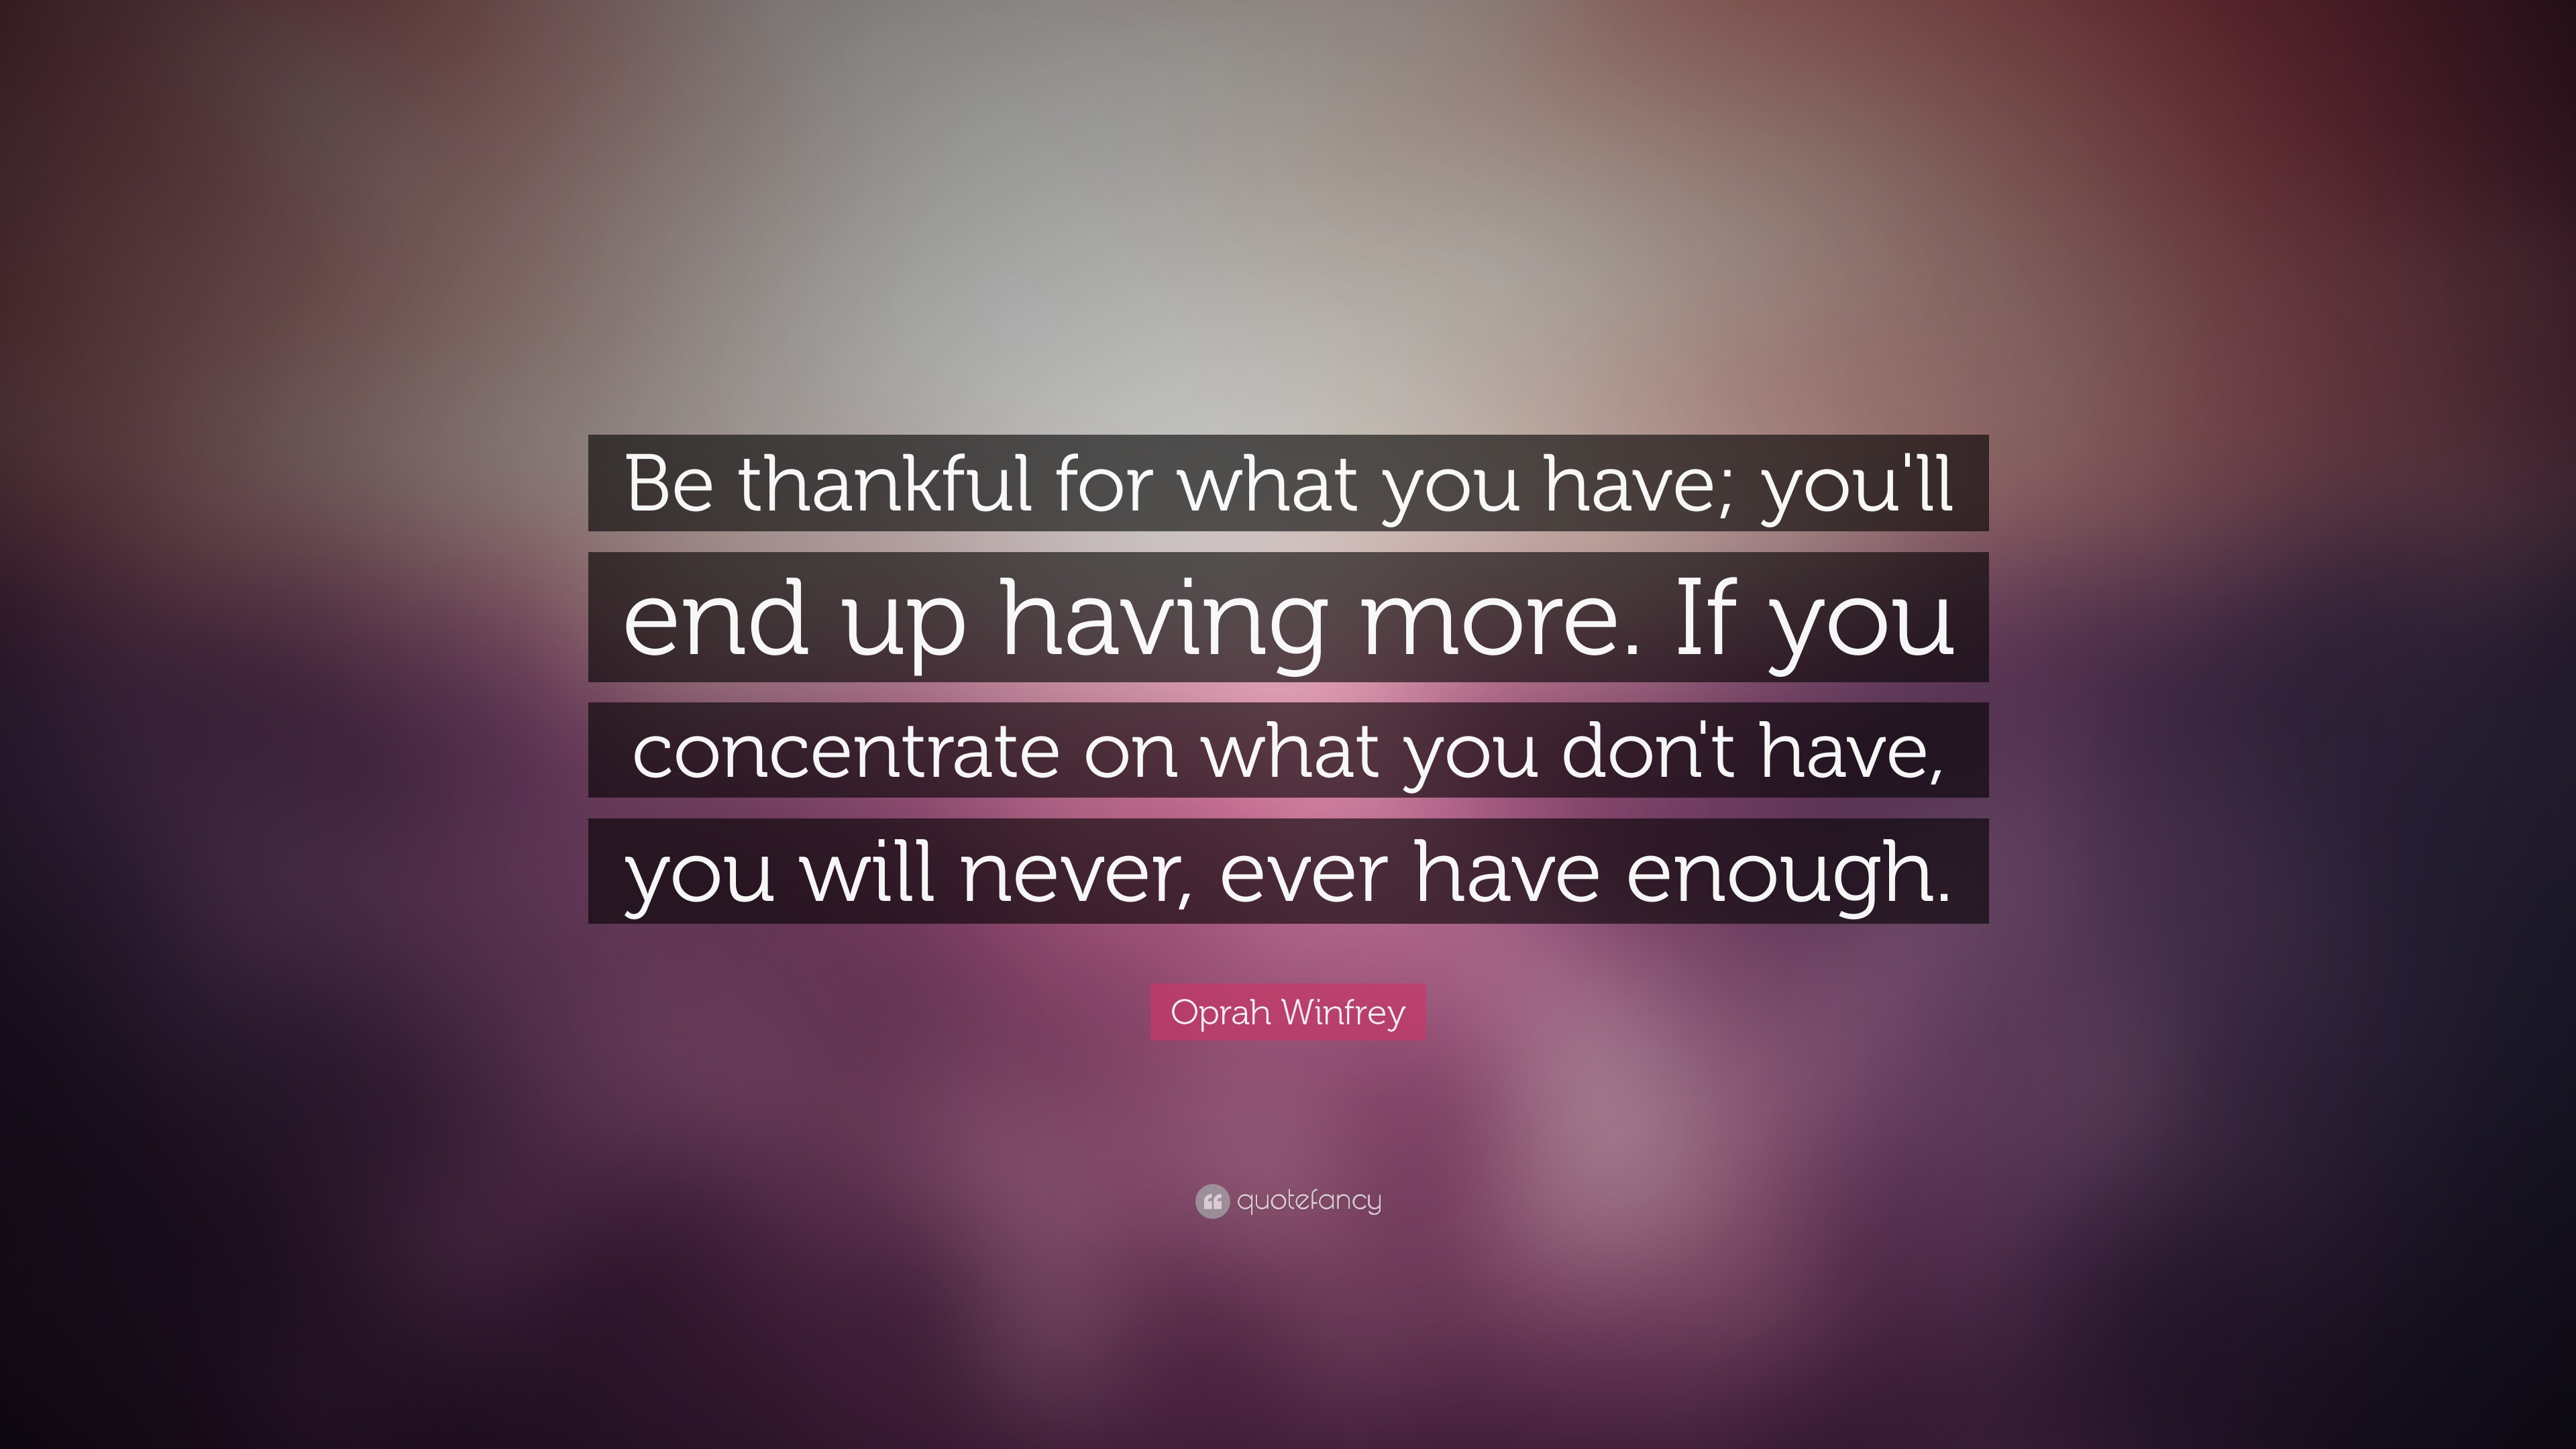 Oprah Winfrey Quote Be Thankful For What You Have Youll End Up